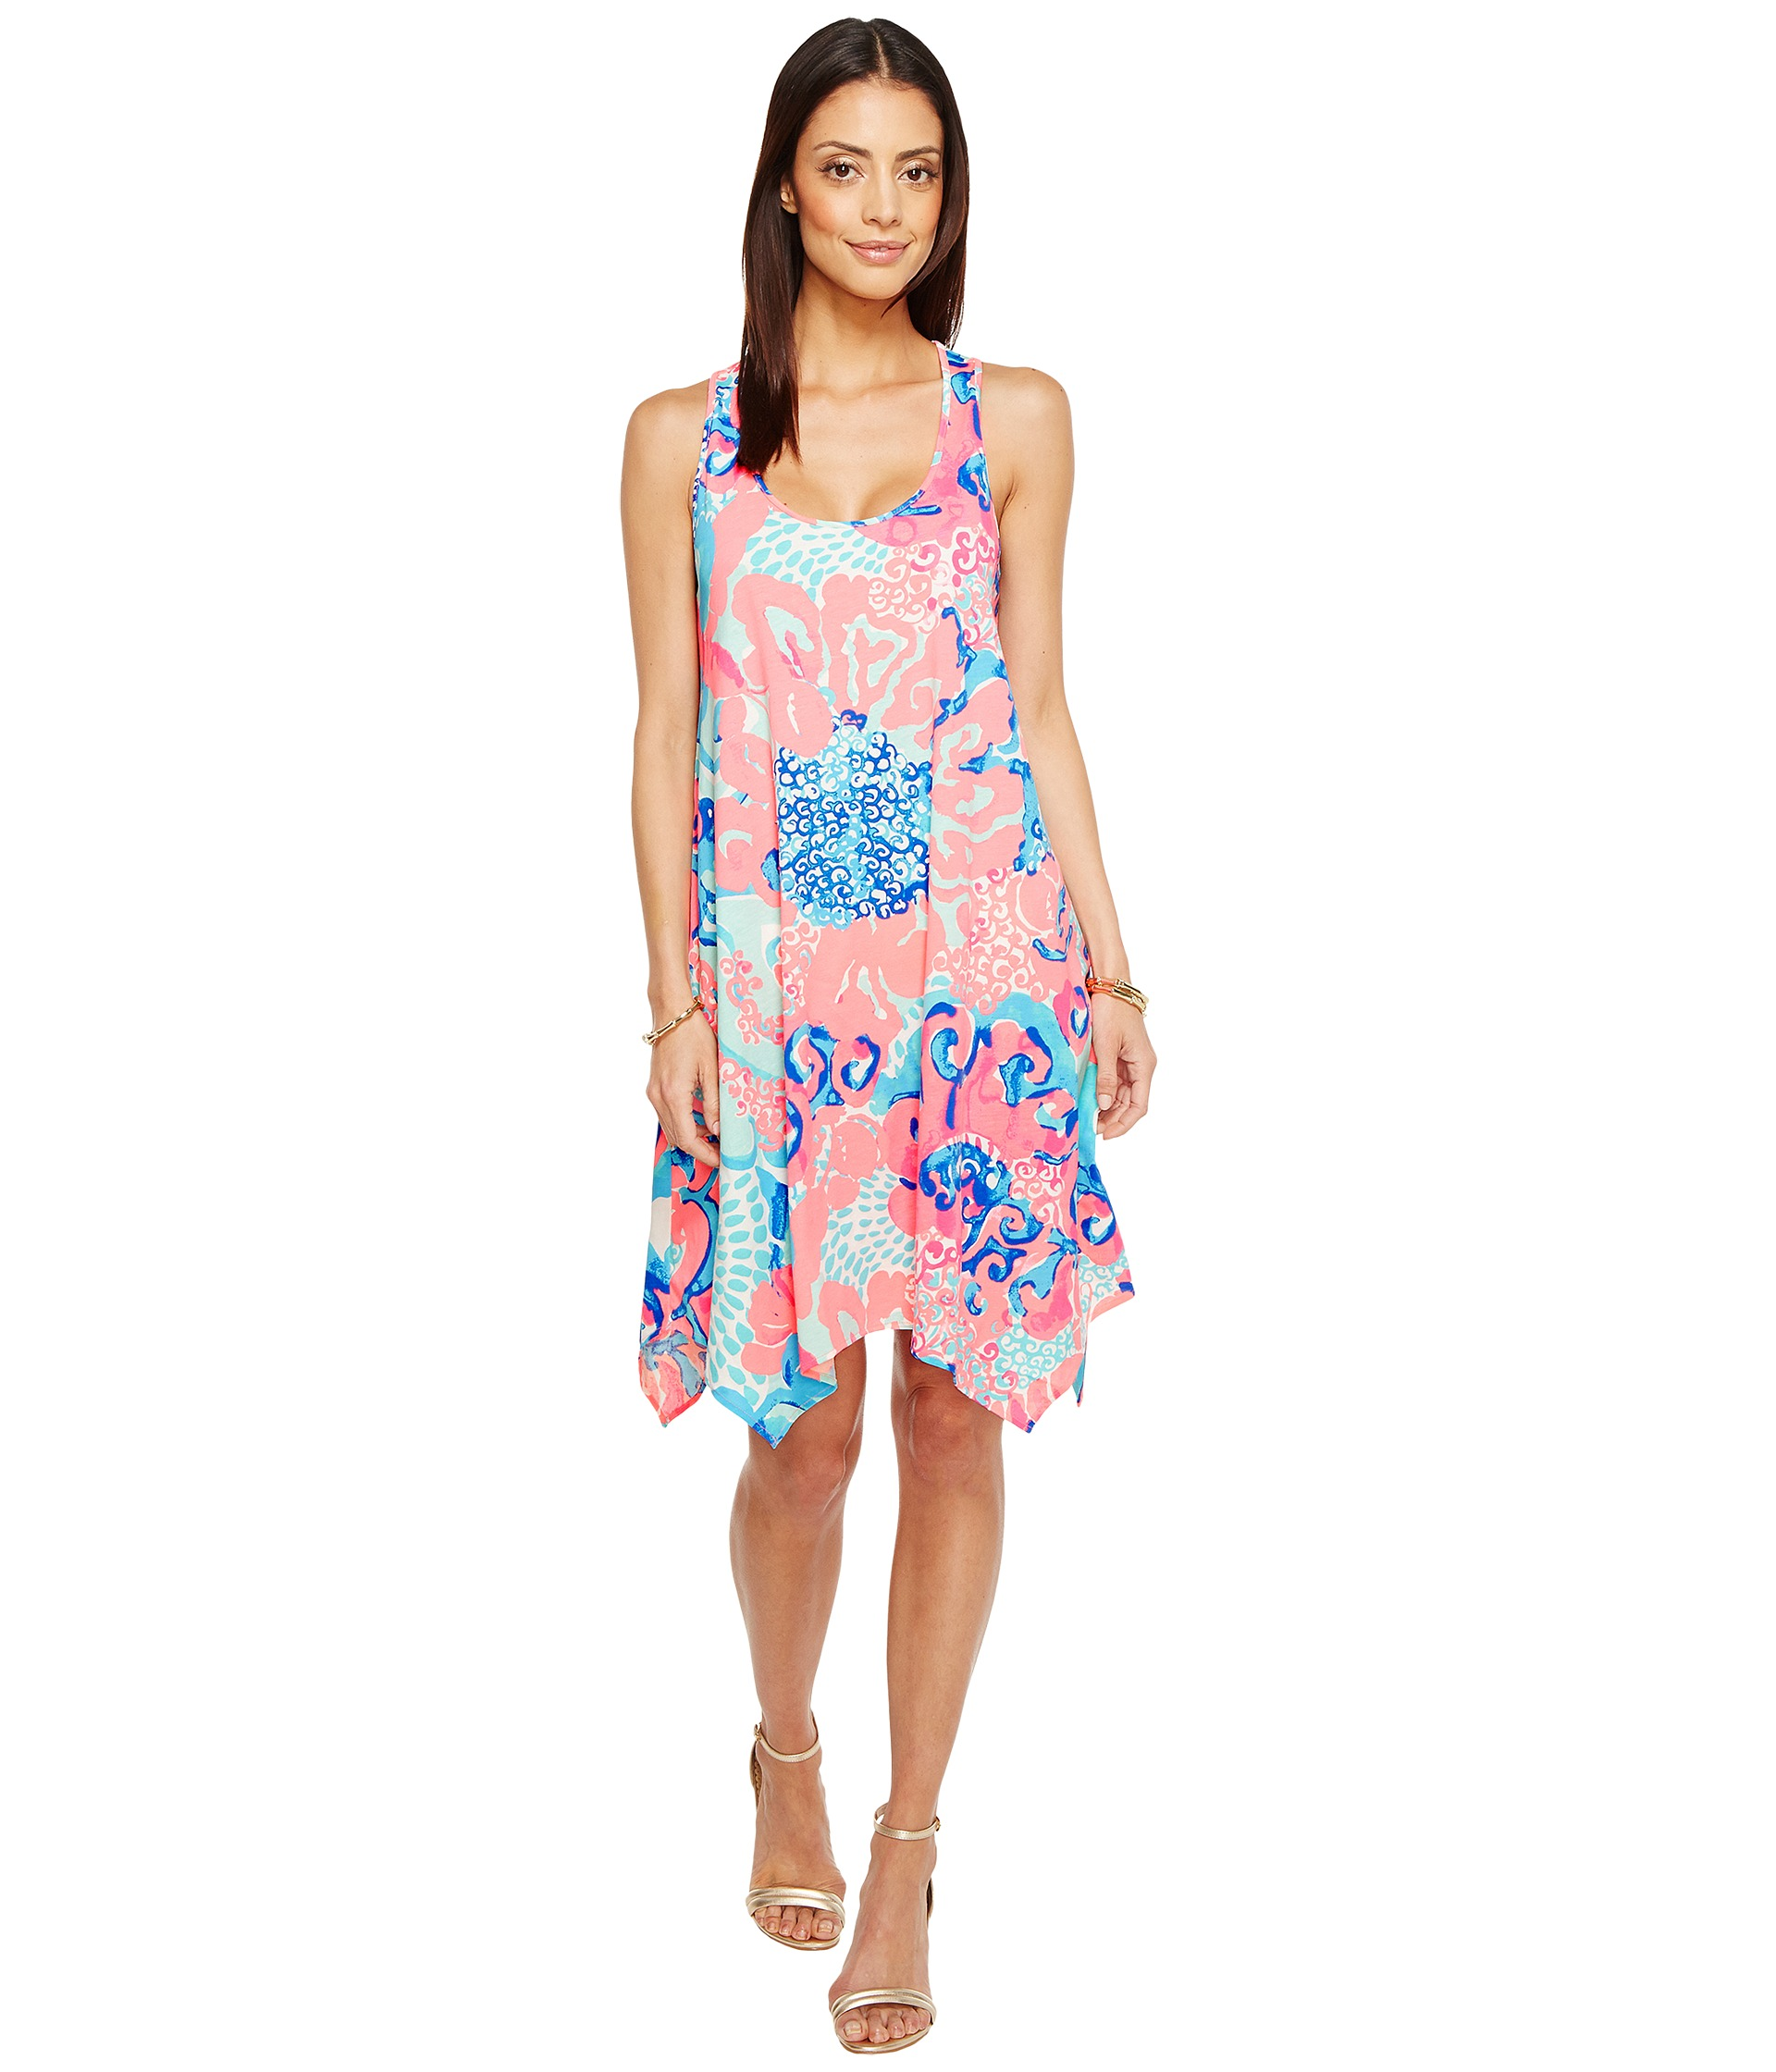 Lilly Pulitzer Melle Dress at Zappos.com